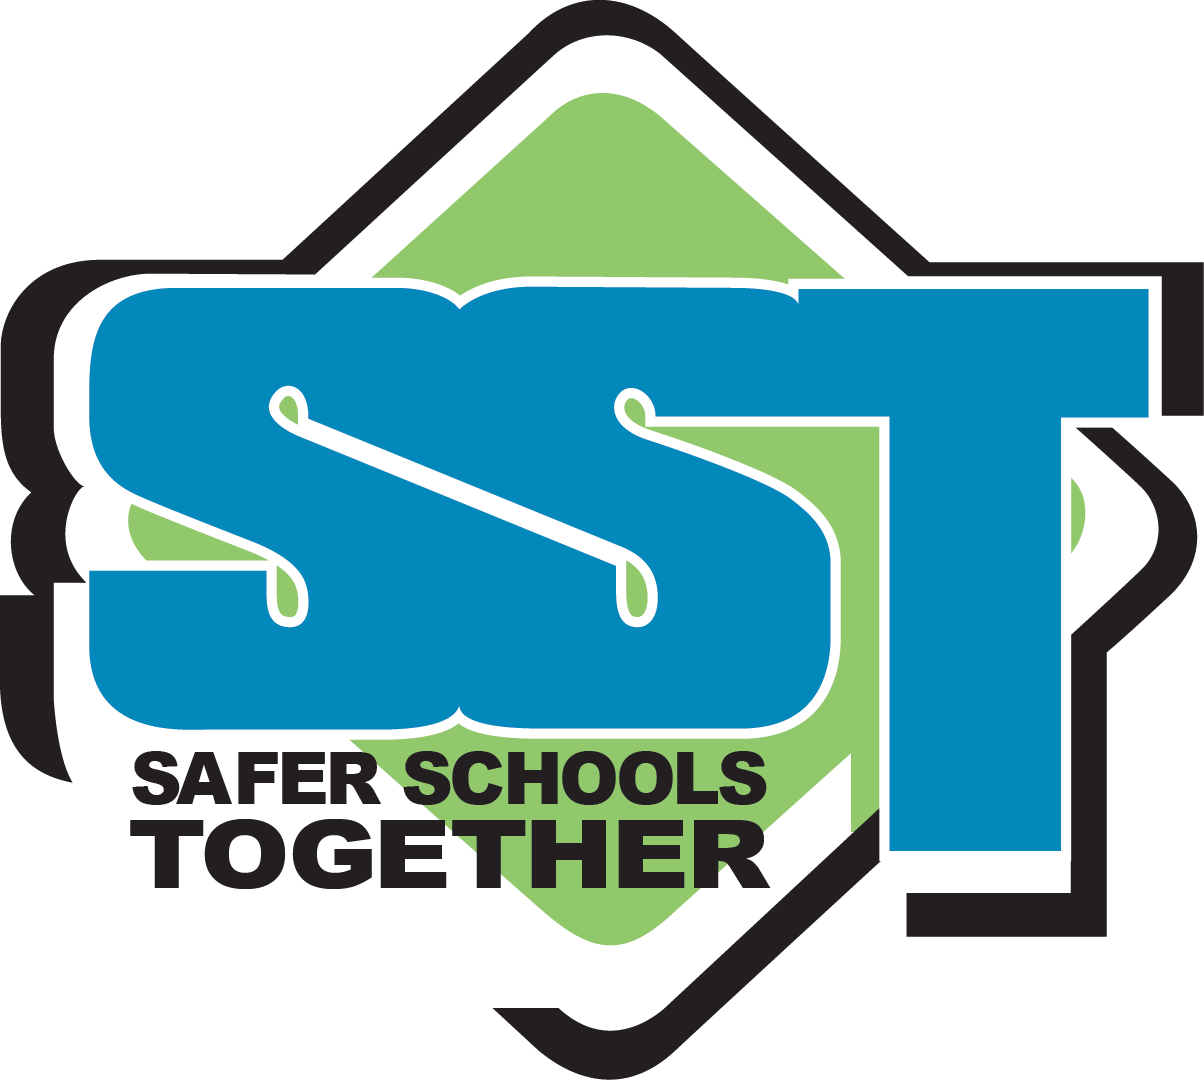 Safer schools together homepage. Conference clipart school administrator